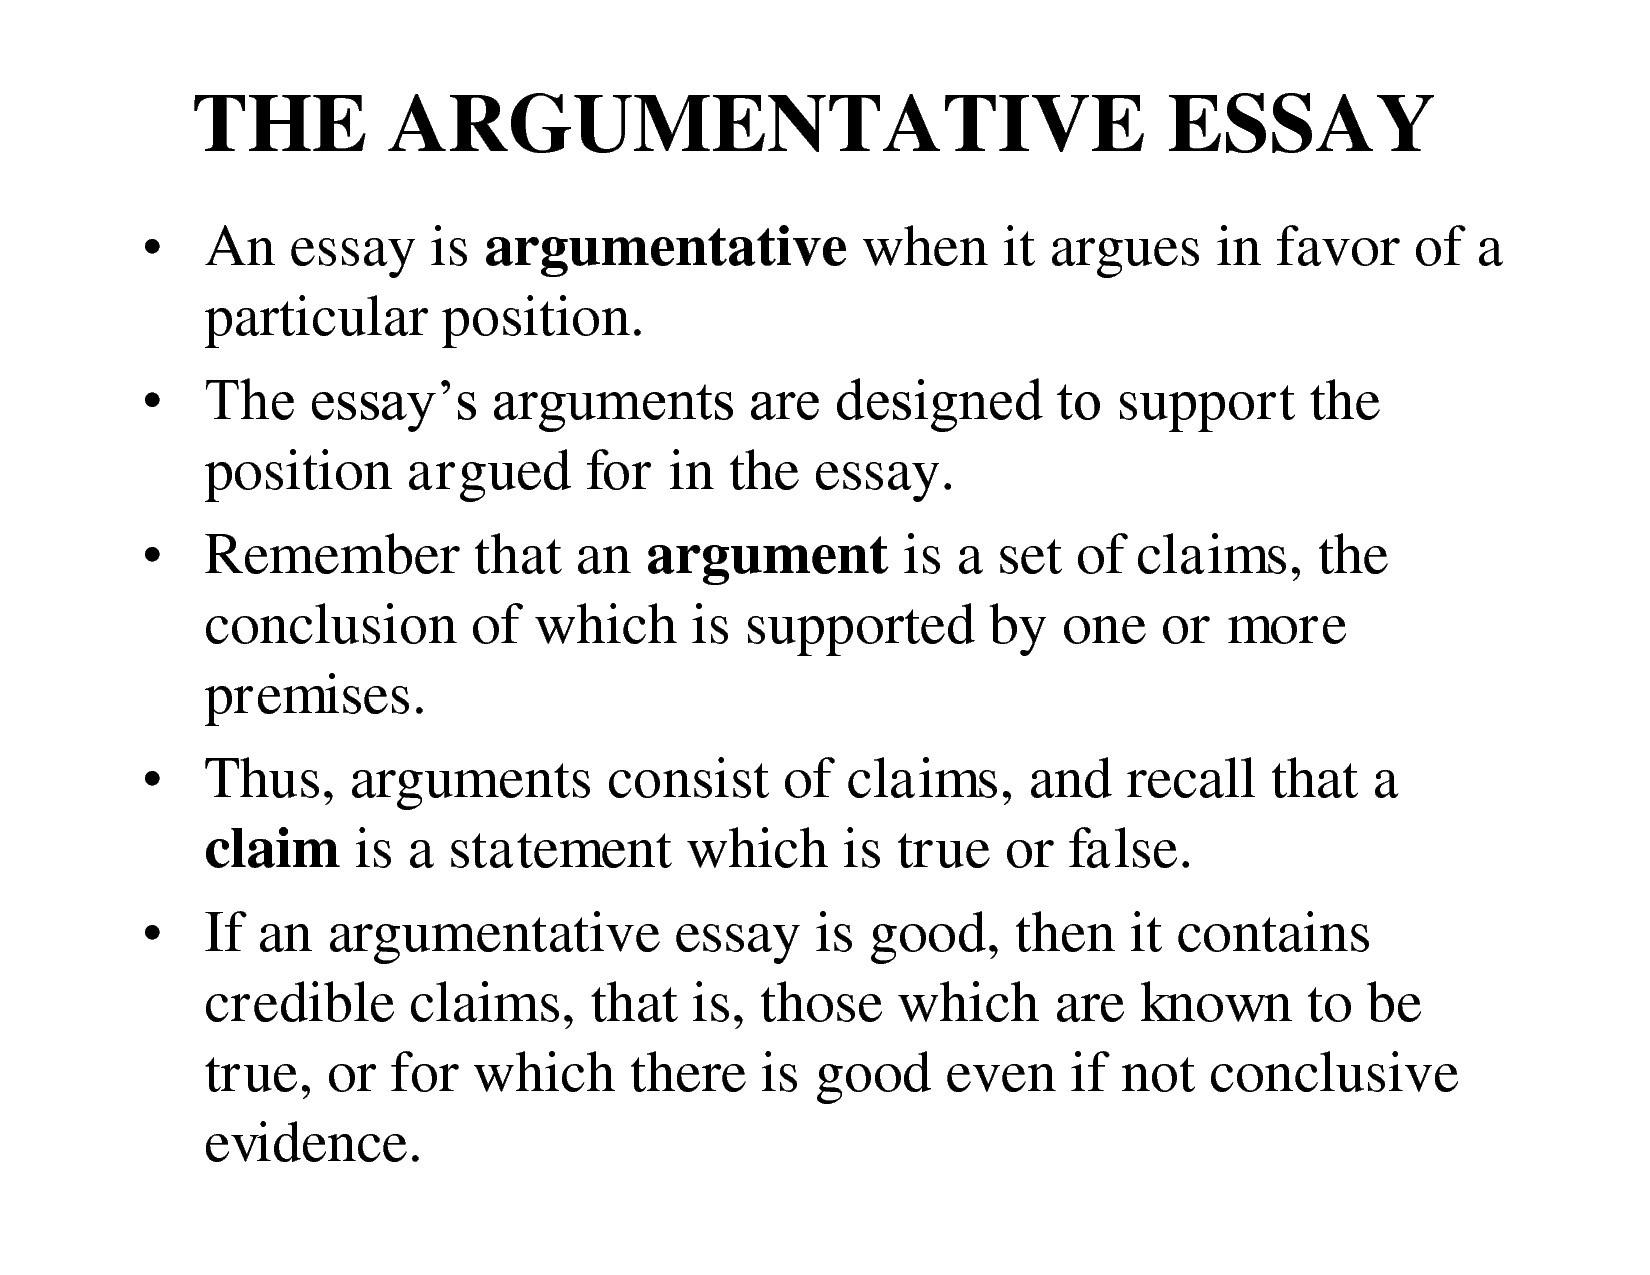 003 Argumentativessay Conclusionxamplexamples And Forms What Is An Definition Outline Printables Corner With Rega Powerpoint Ppt Its Parts Topics Pdf Brainly Define Fantastic Argumentative Essay Claim Full